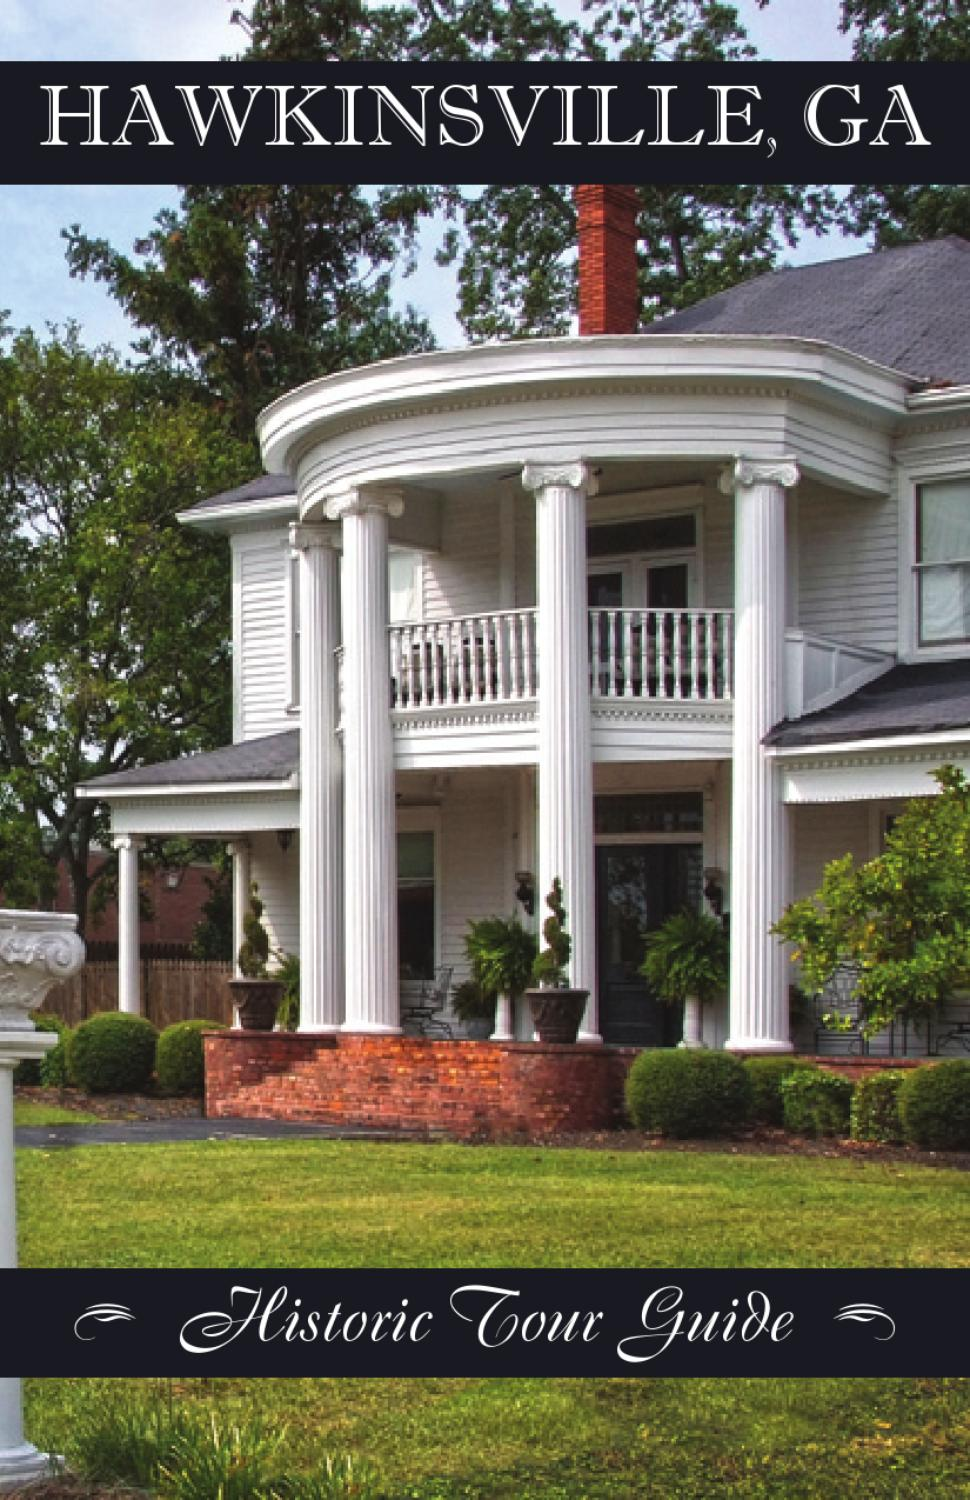 Hawkinsville Historic Tour Guide 2013 By Billingsley Co